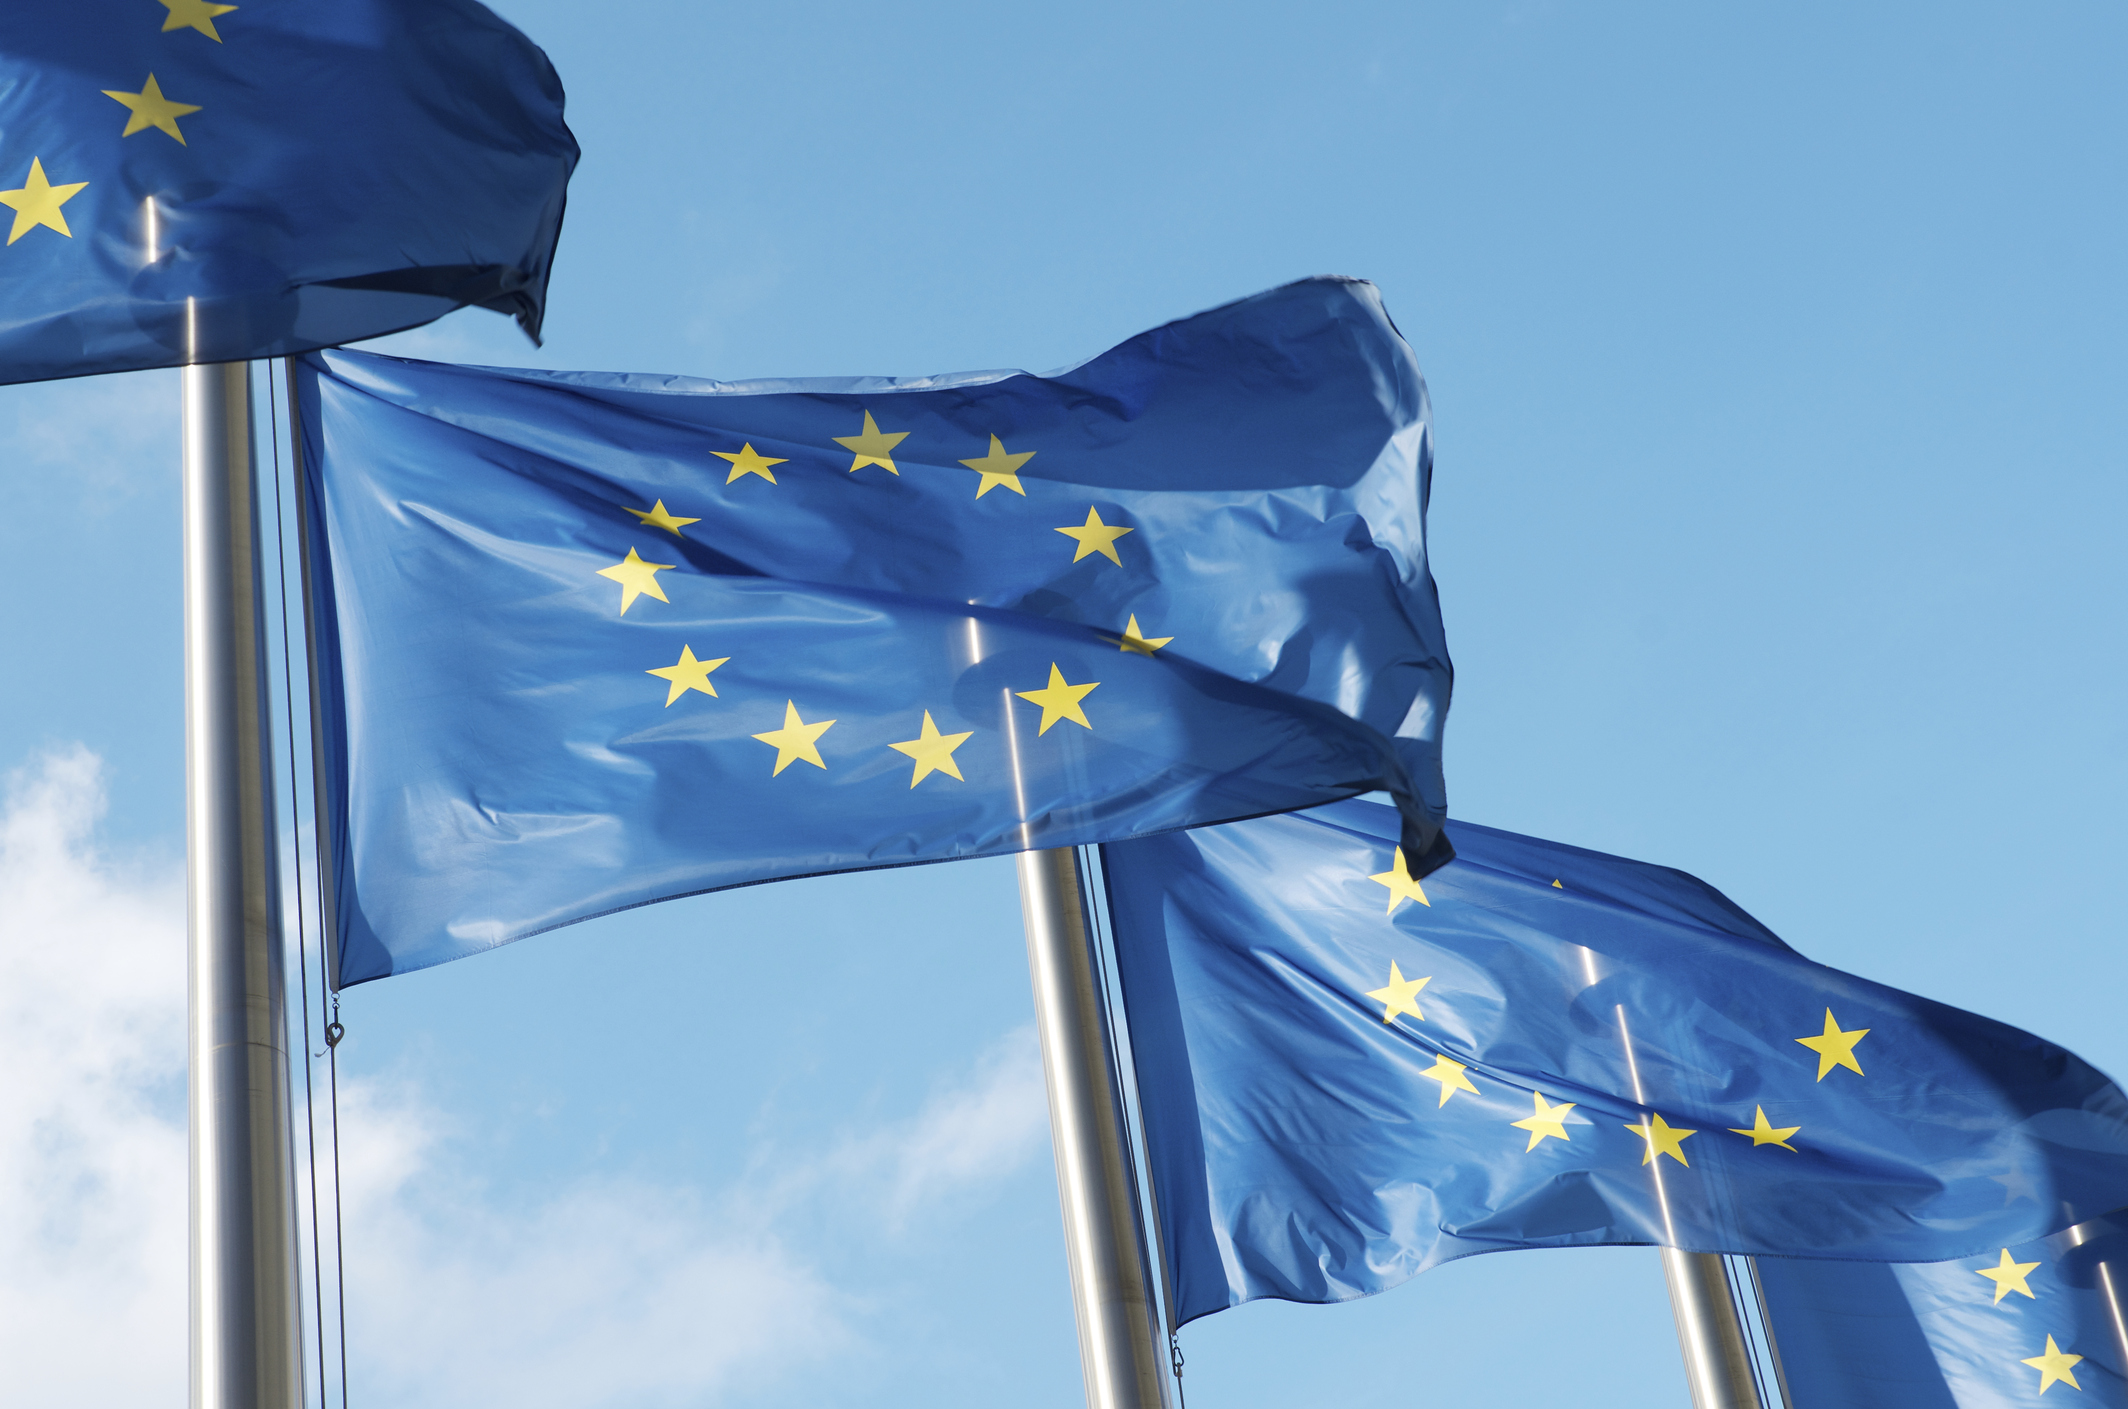 Row of European Union flags waving in the wind against a blue sky, photo by sharrocks/Getty Images